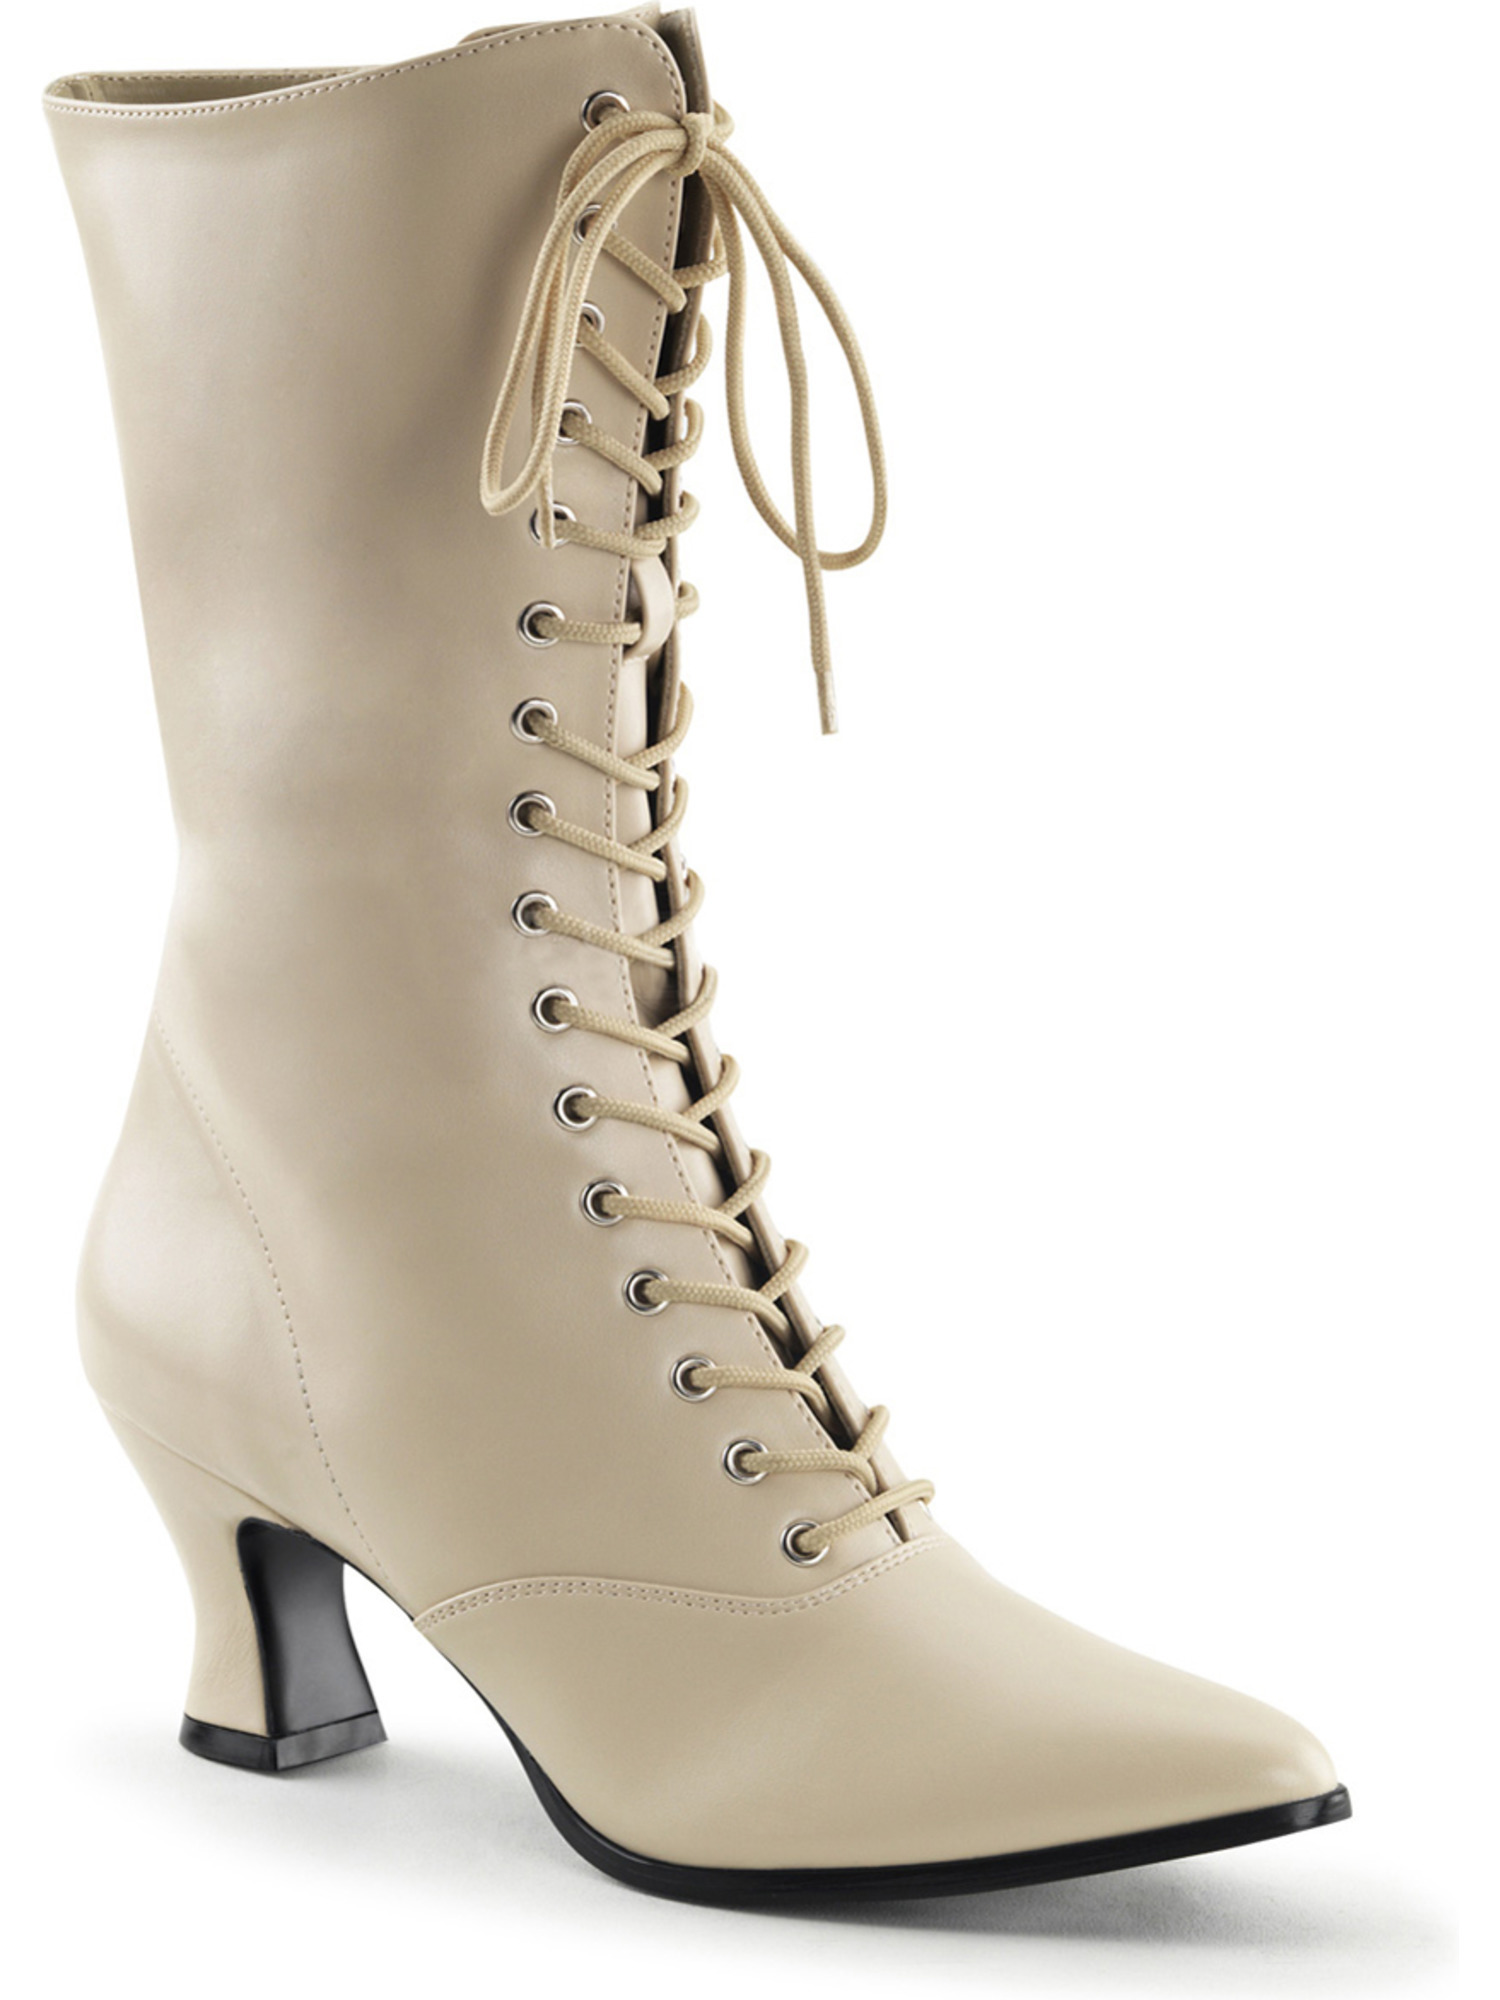 Womens Cream Victorian Boots with Lace Up Front and 2 Inch Kitten Heels